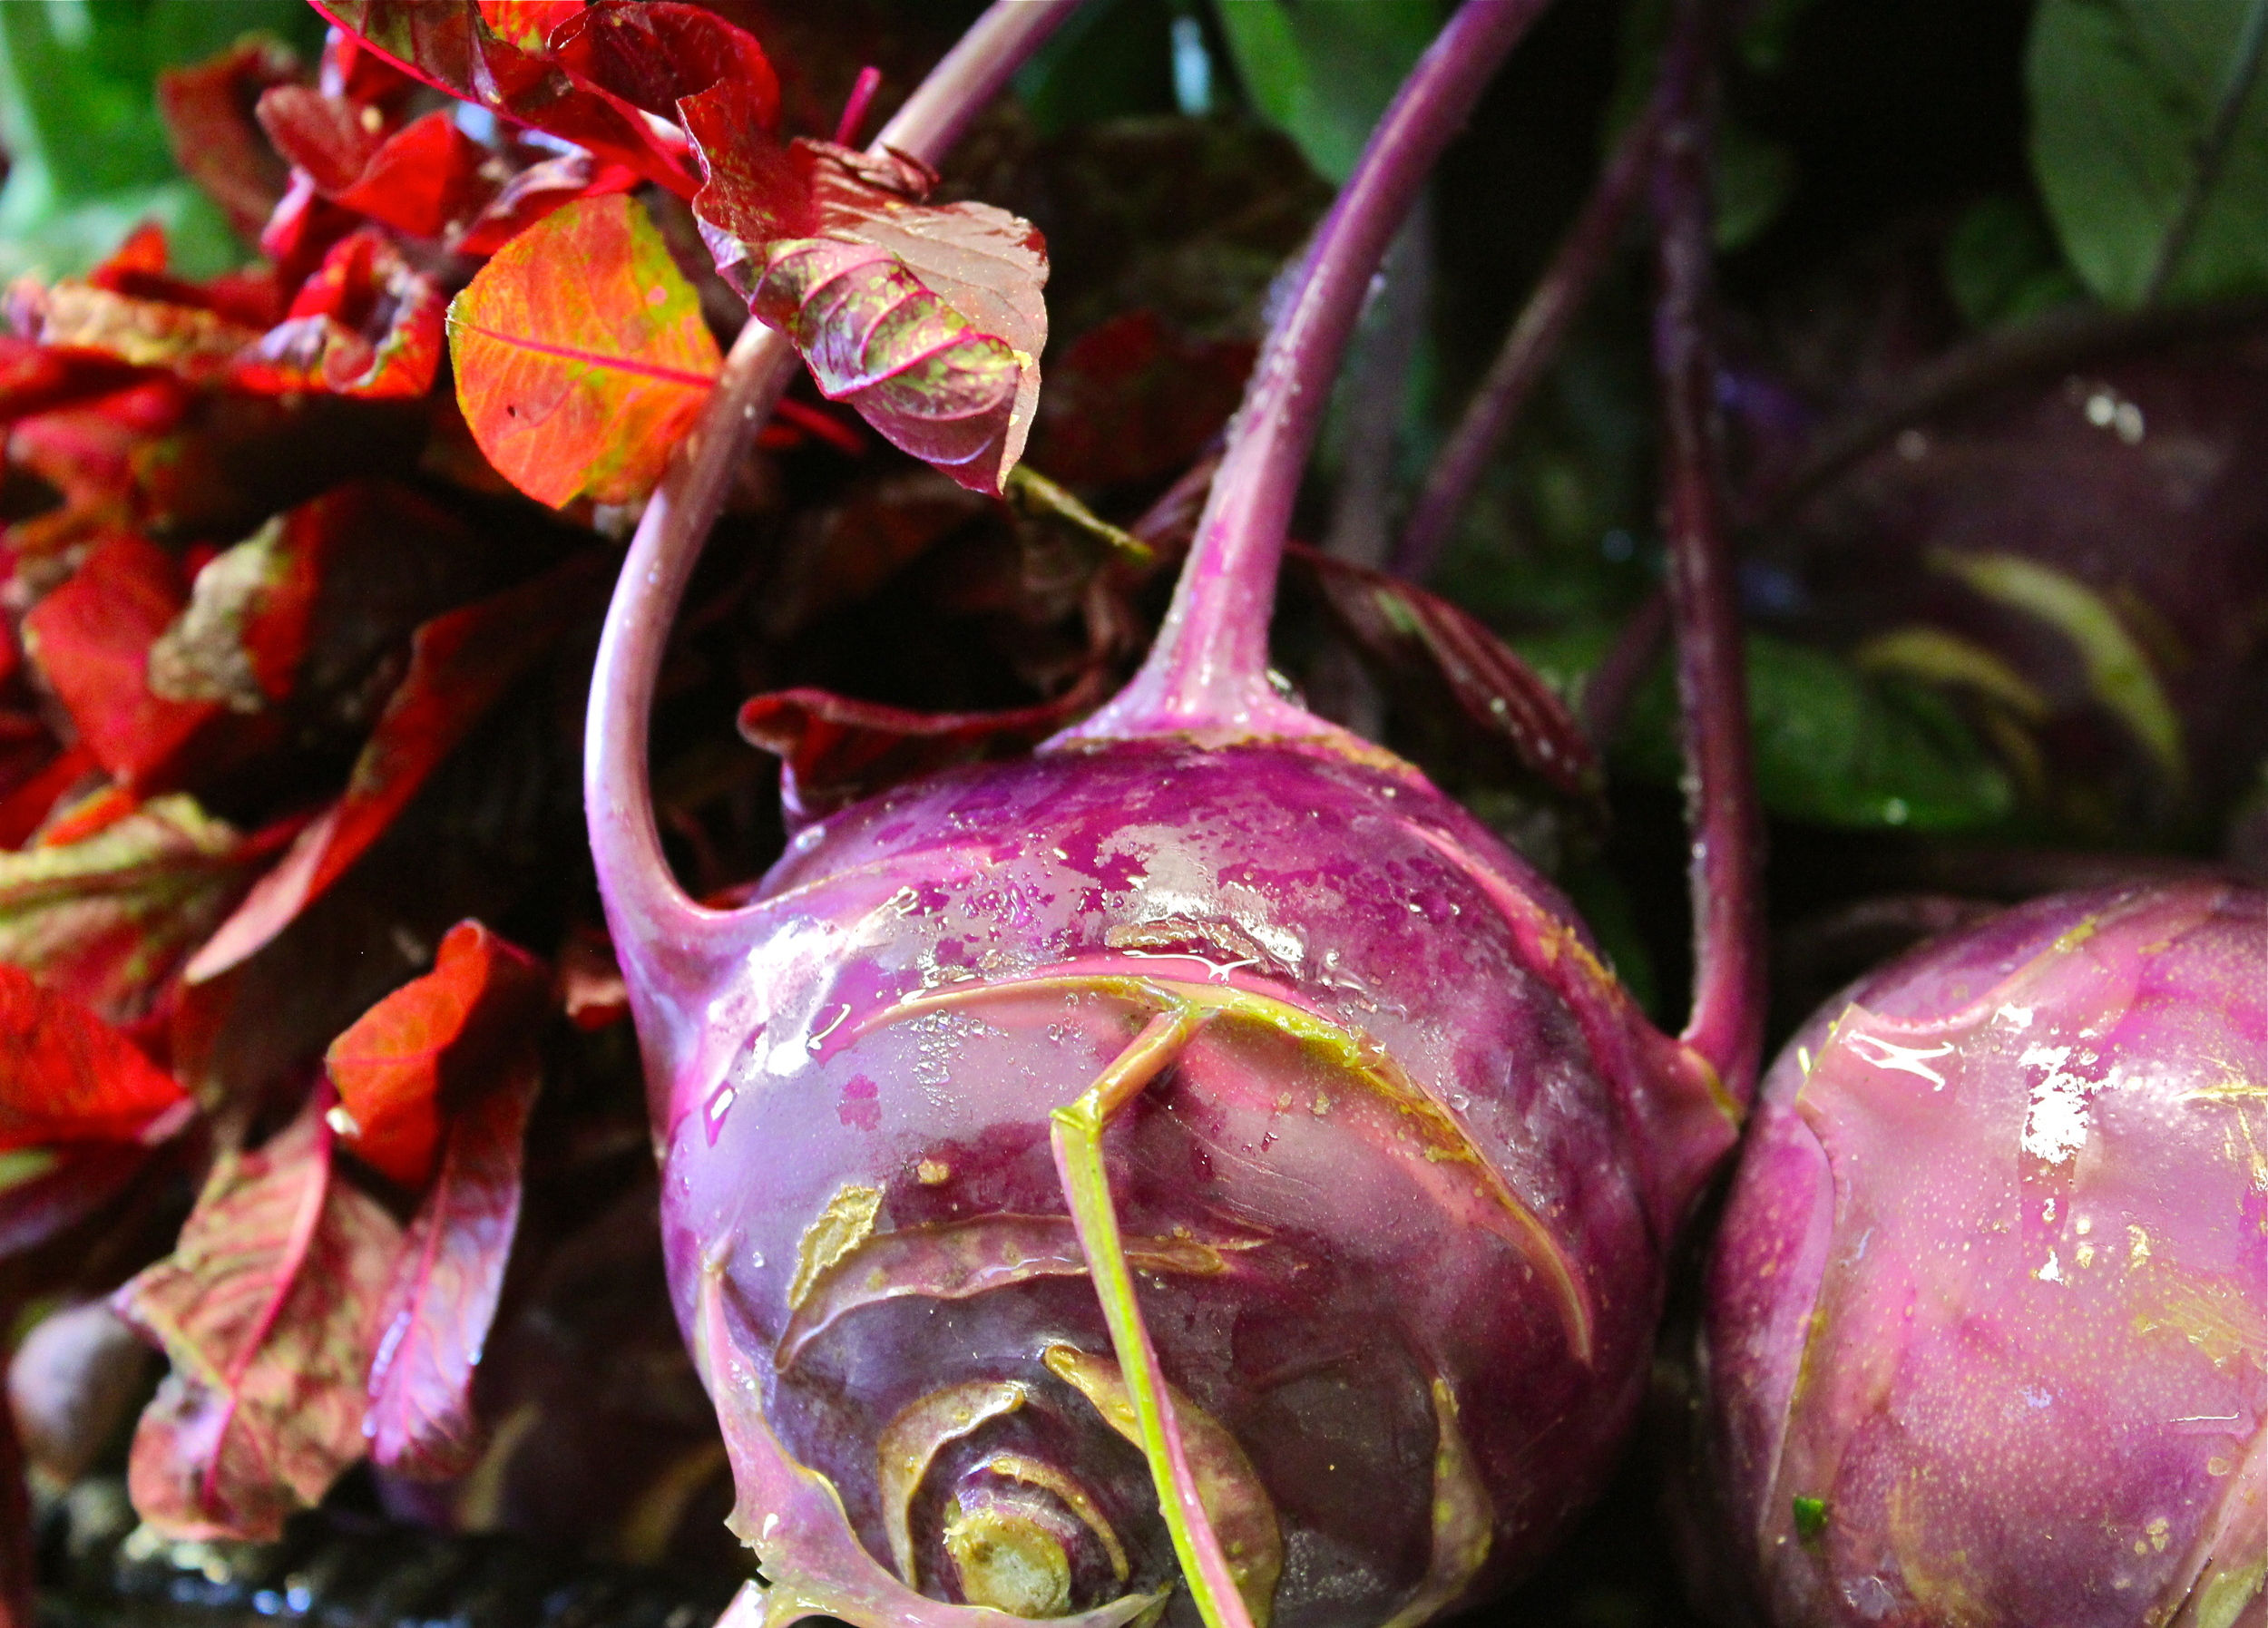 Gorgeous purple kohlrabi on the shelves at Argus.